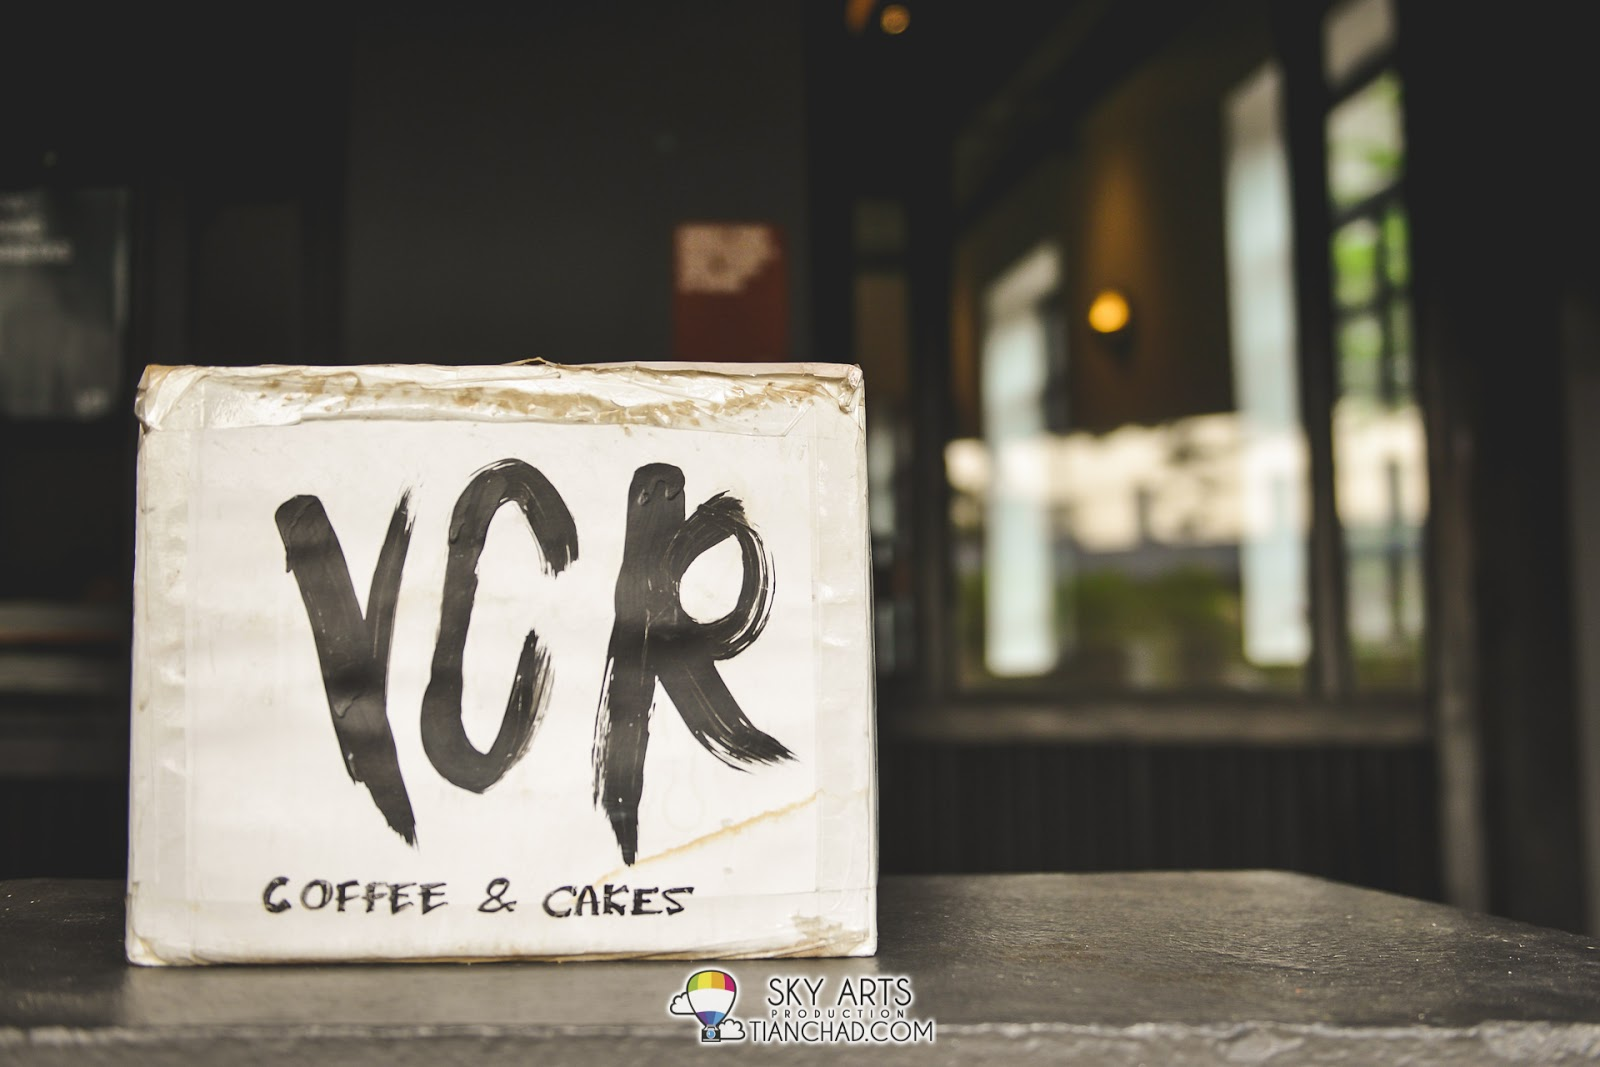 VCR Coffee and Cakes